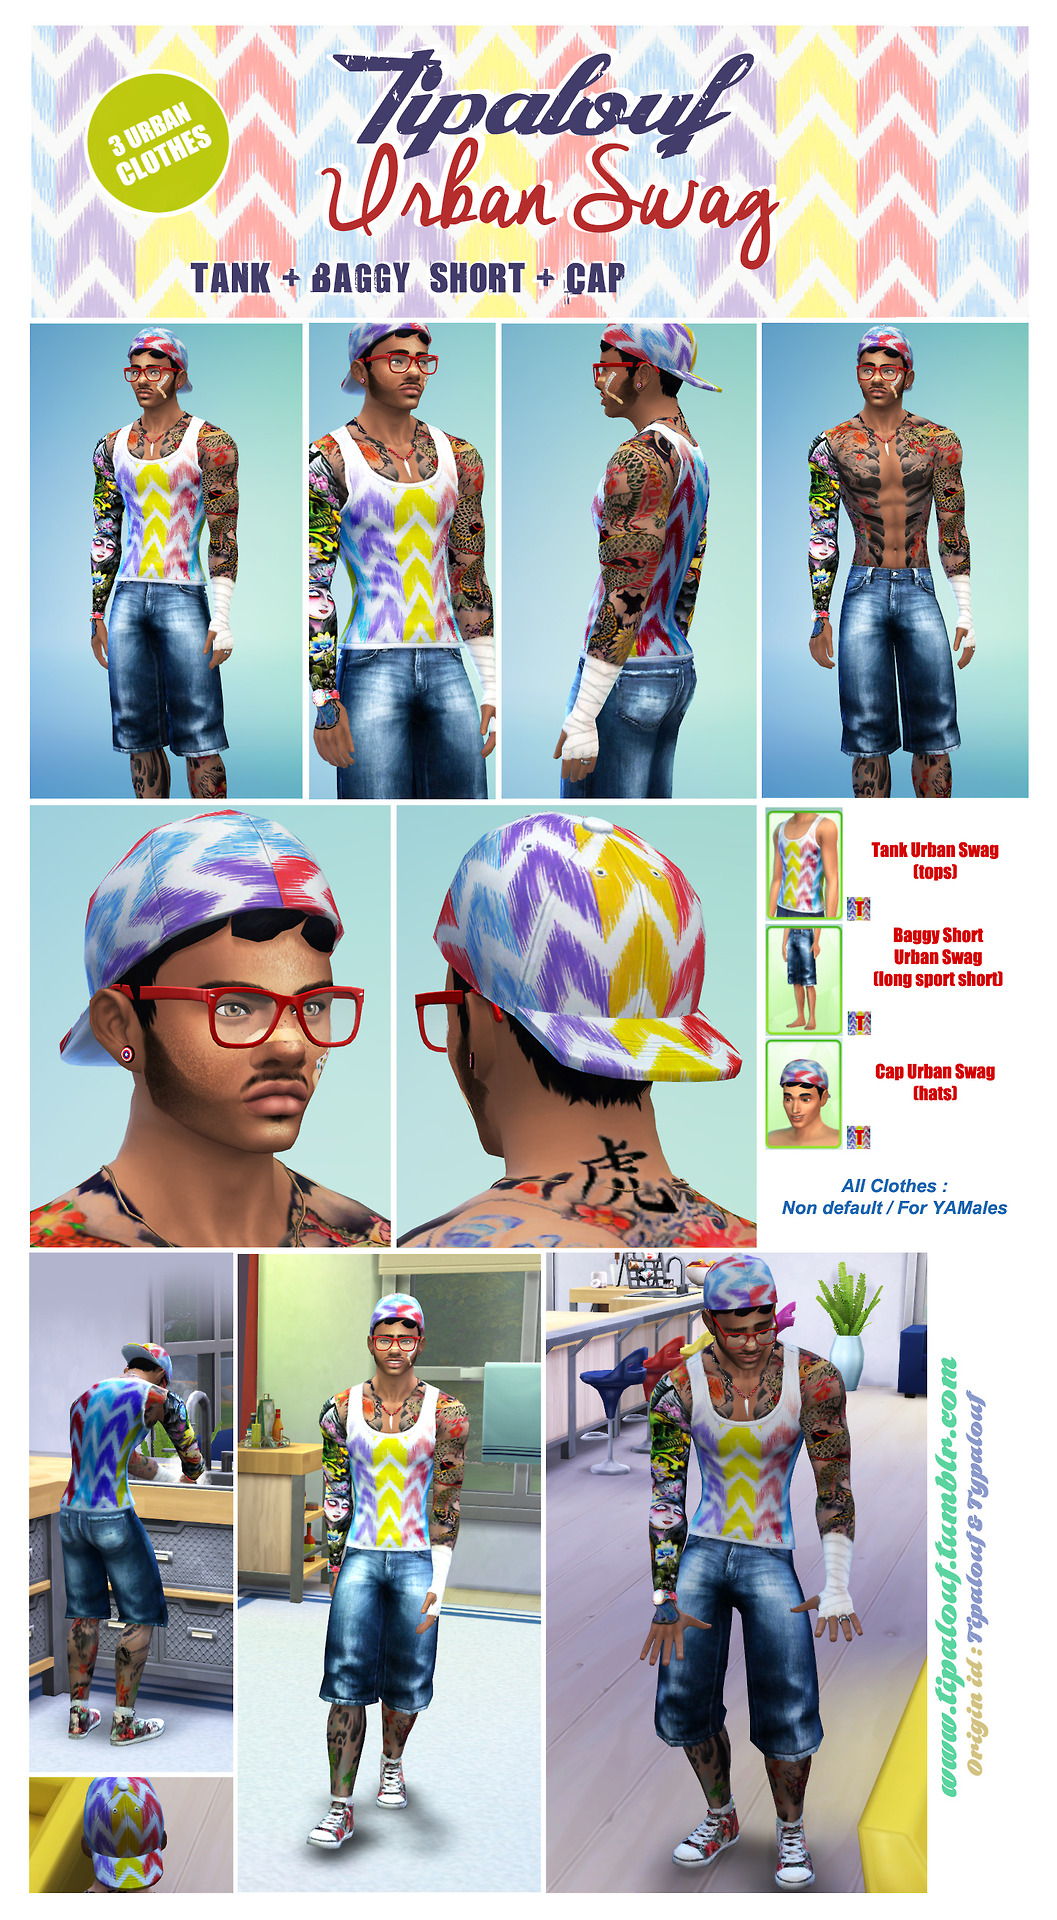 Urban Swag Tank + Baggy Shorts + Cap for Males by Tipalouf